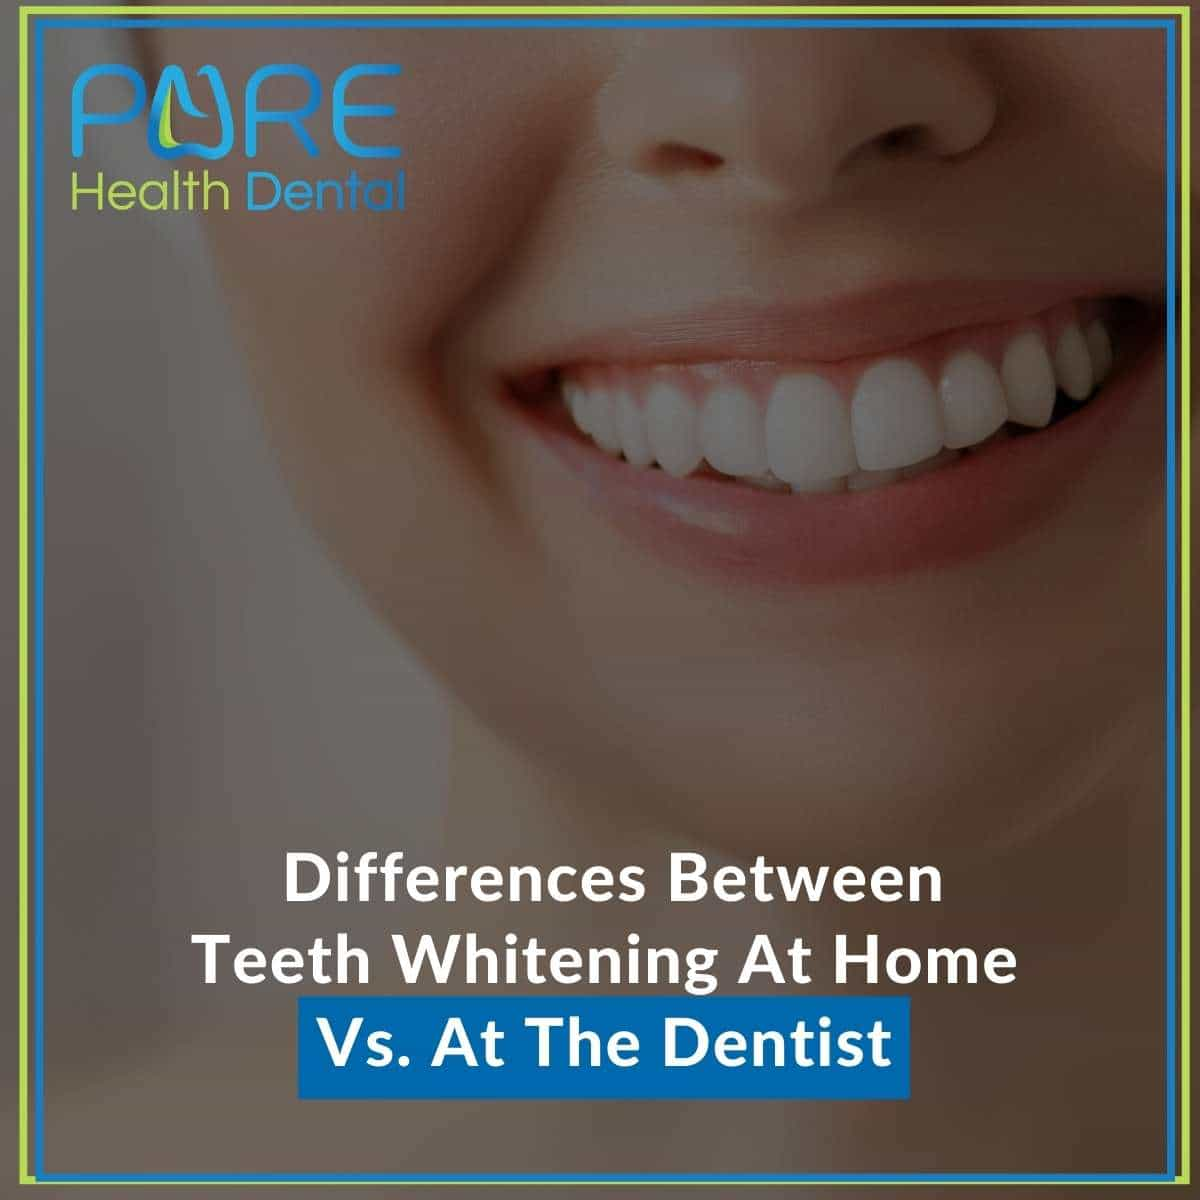 Differences Between Teeth Whitening At Home Vs. At The Dentist